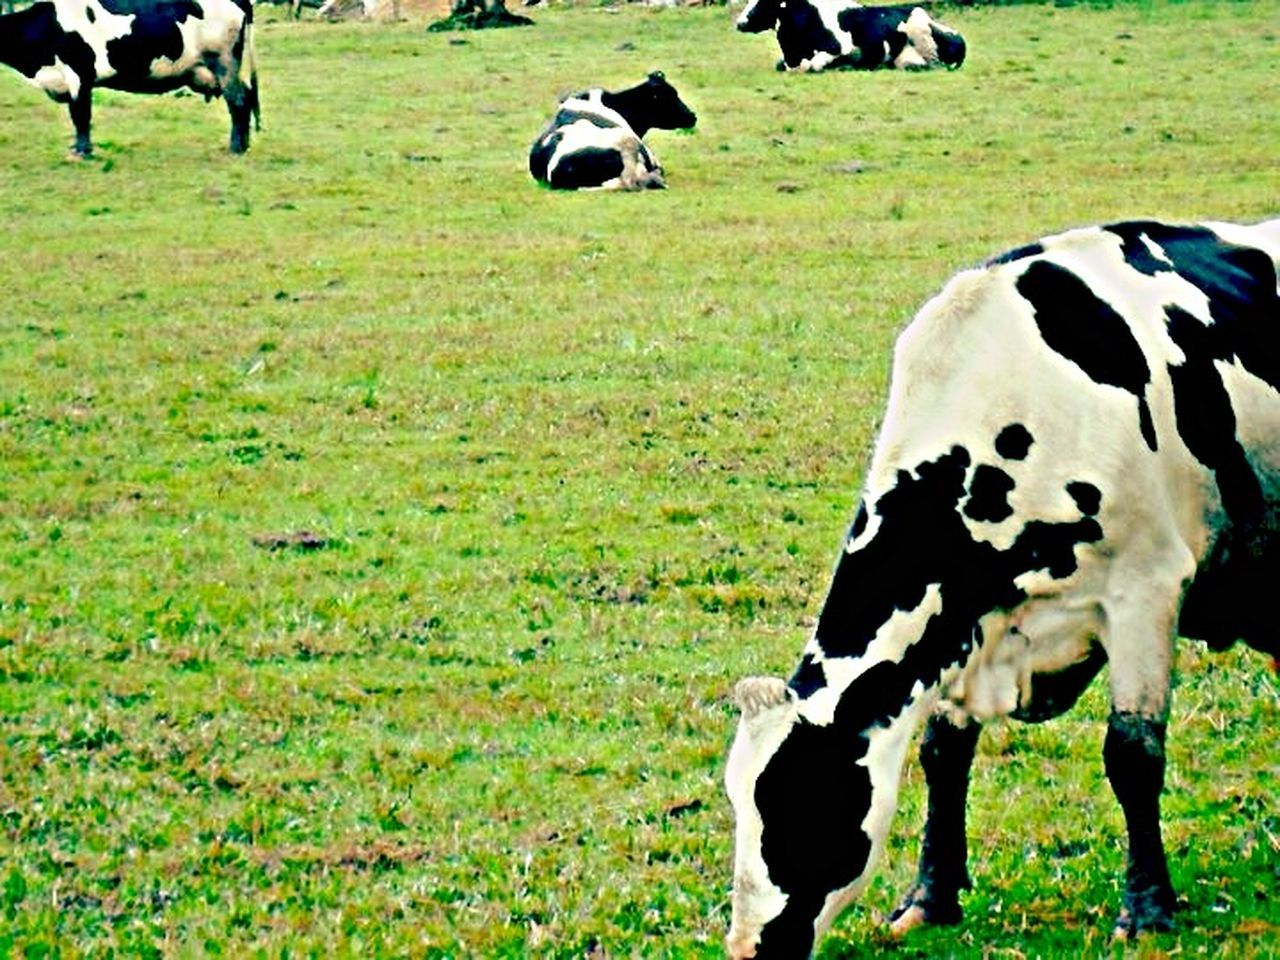 Cow Crew Hanging Out Hello World Check This Out EyeEm Nature Lover Nature Animal_collection Farm Life Green Cow Nova Petrópolis